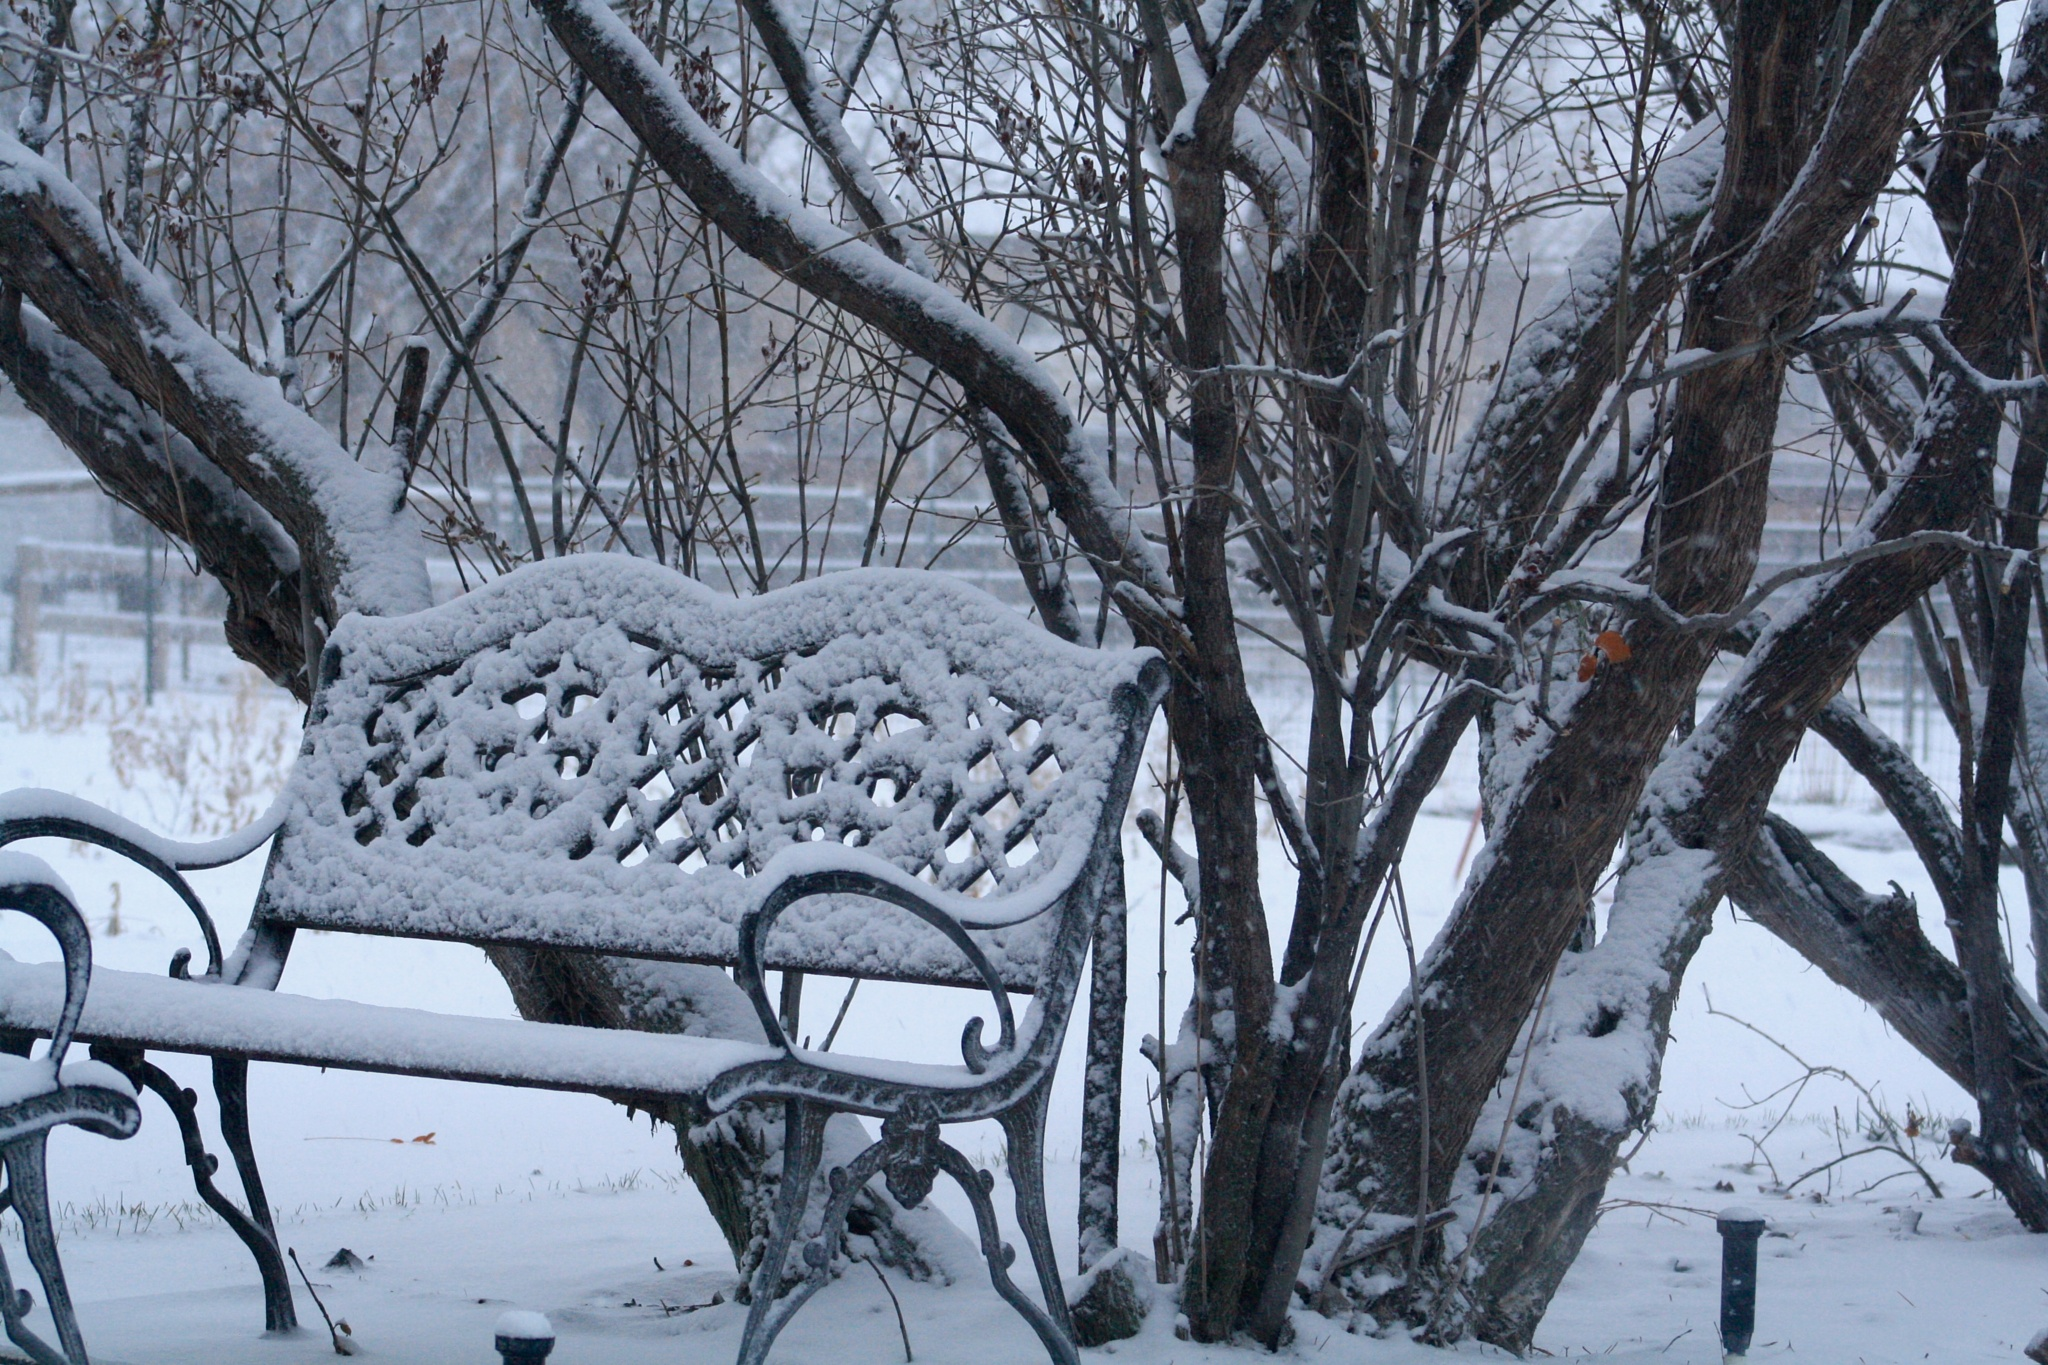 Snow Bench by slaac